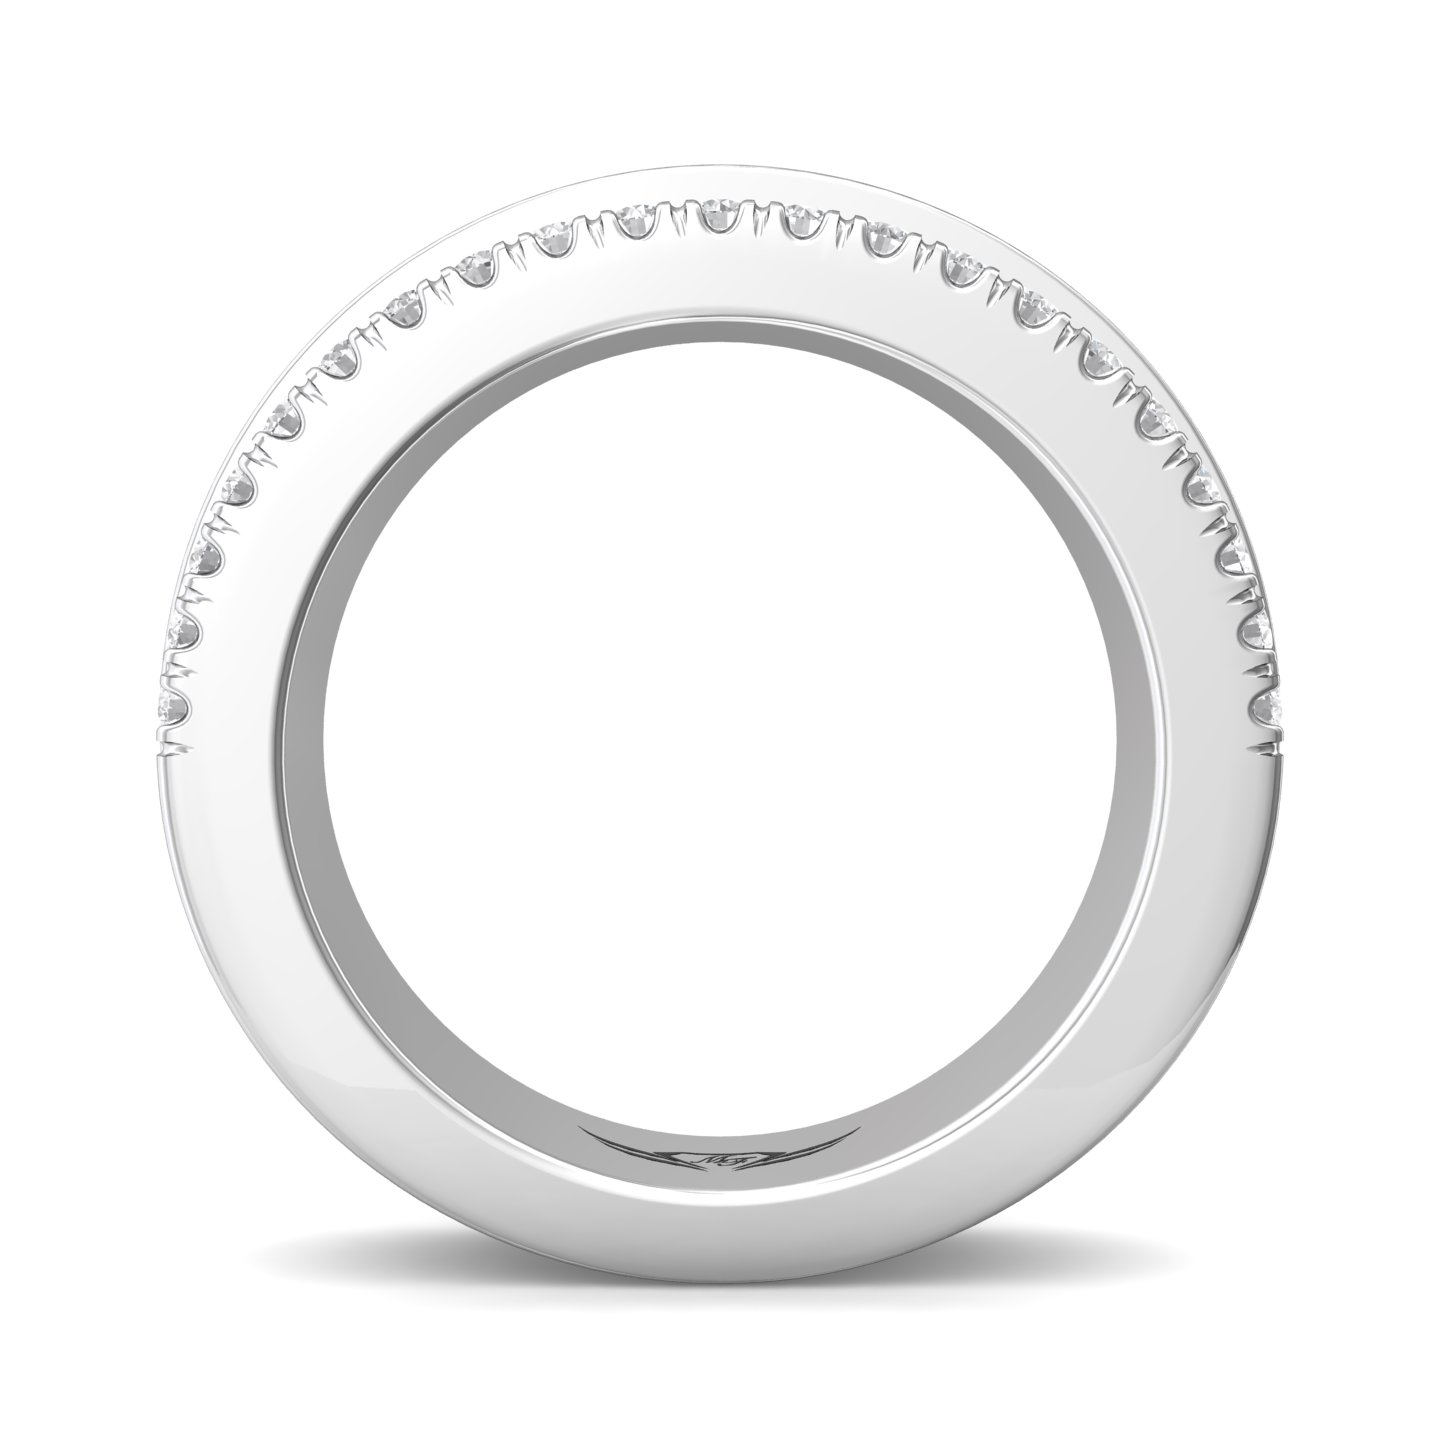 Rings - 14K White Gold FlyerFit Channel Wedding Band - image #2